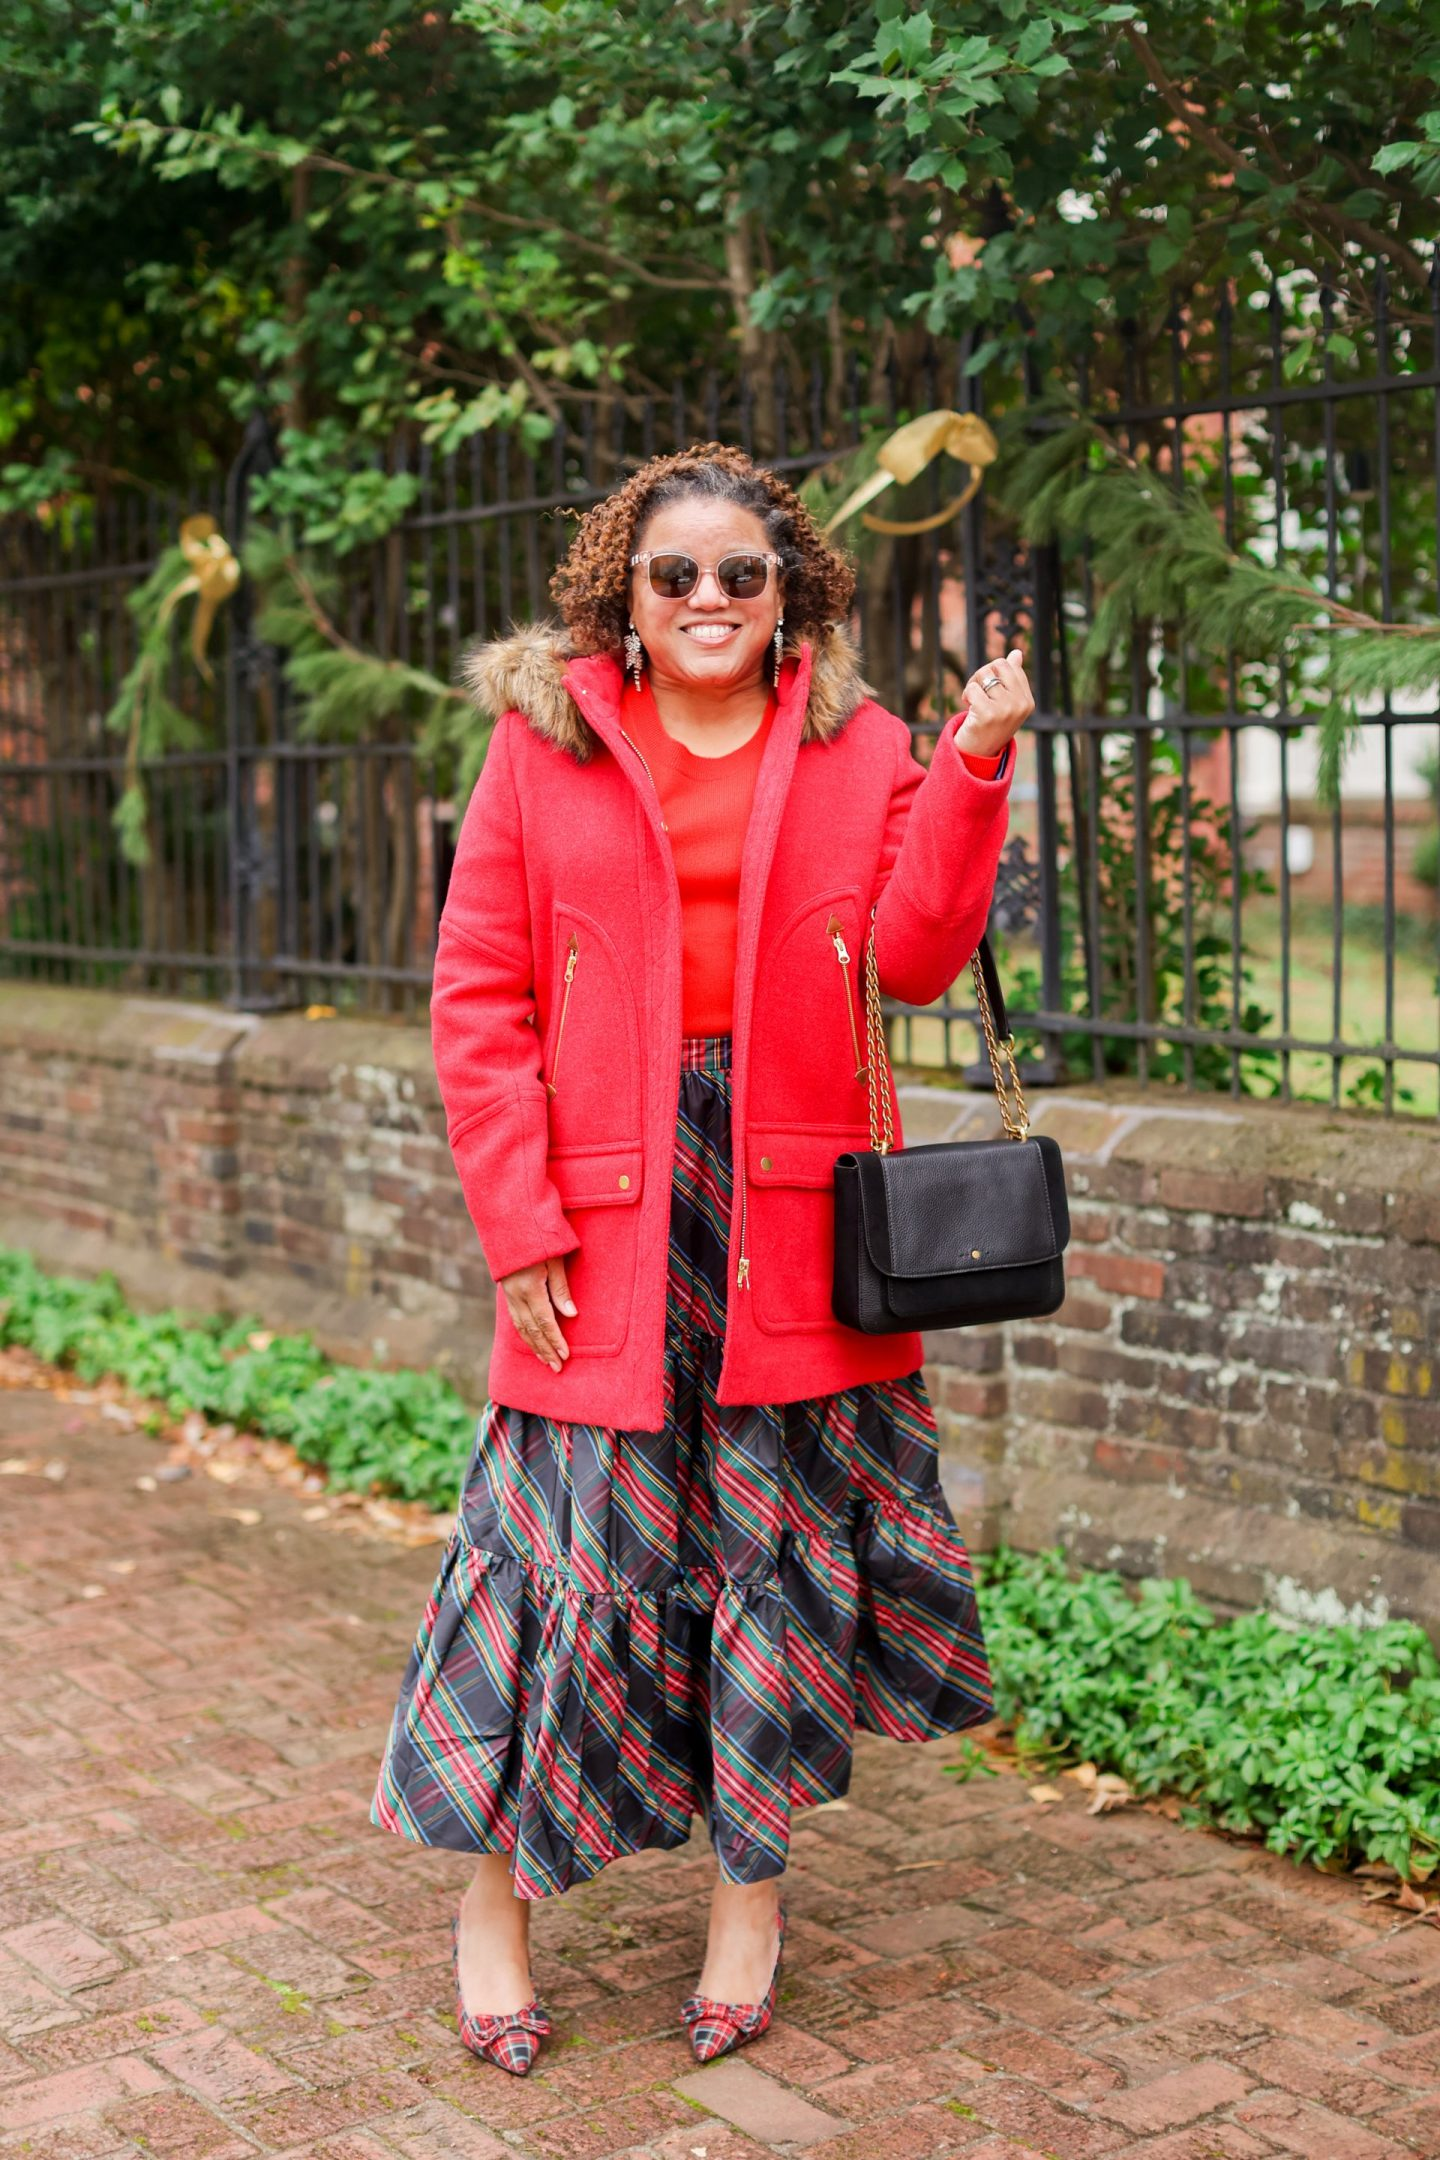 Holiday Outfits by popular Kentucky fashion blog, Really Rynetta: image of a woman standing outside and wearing a tartan plaid maxi skirt, red shirt, and chateau parka.